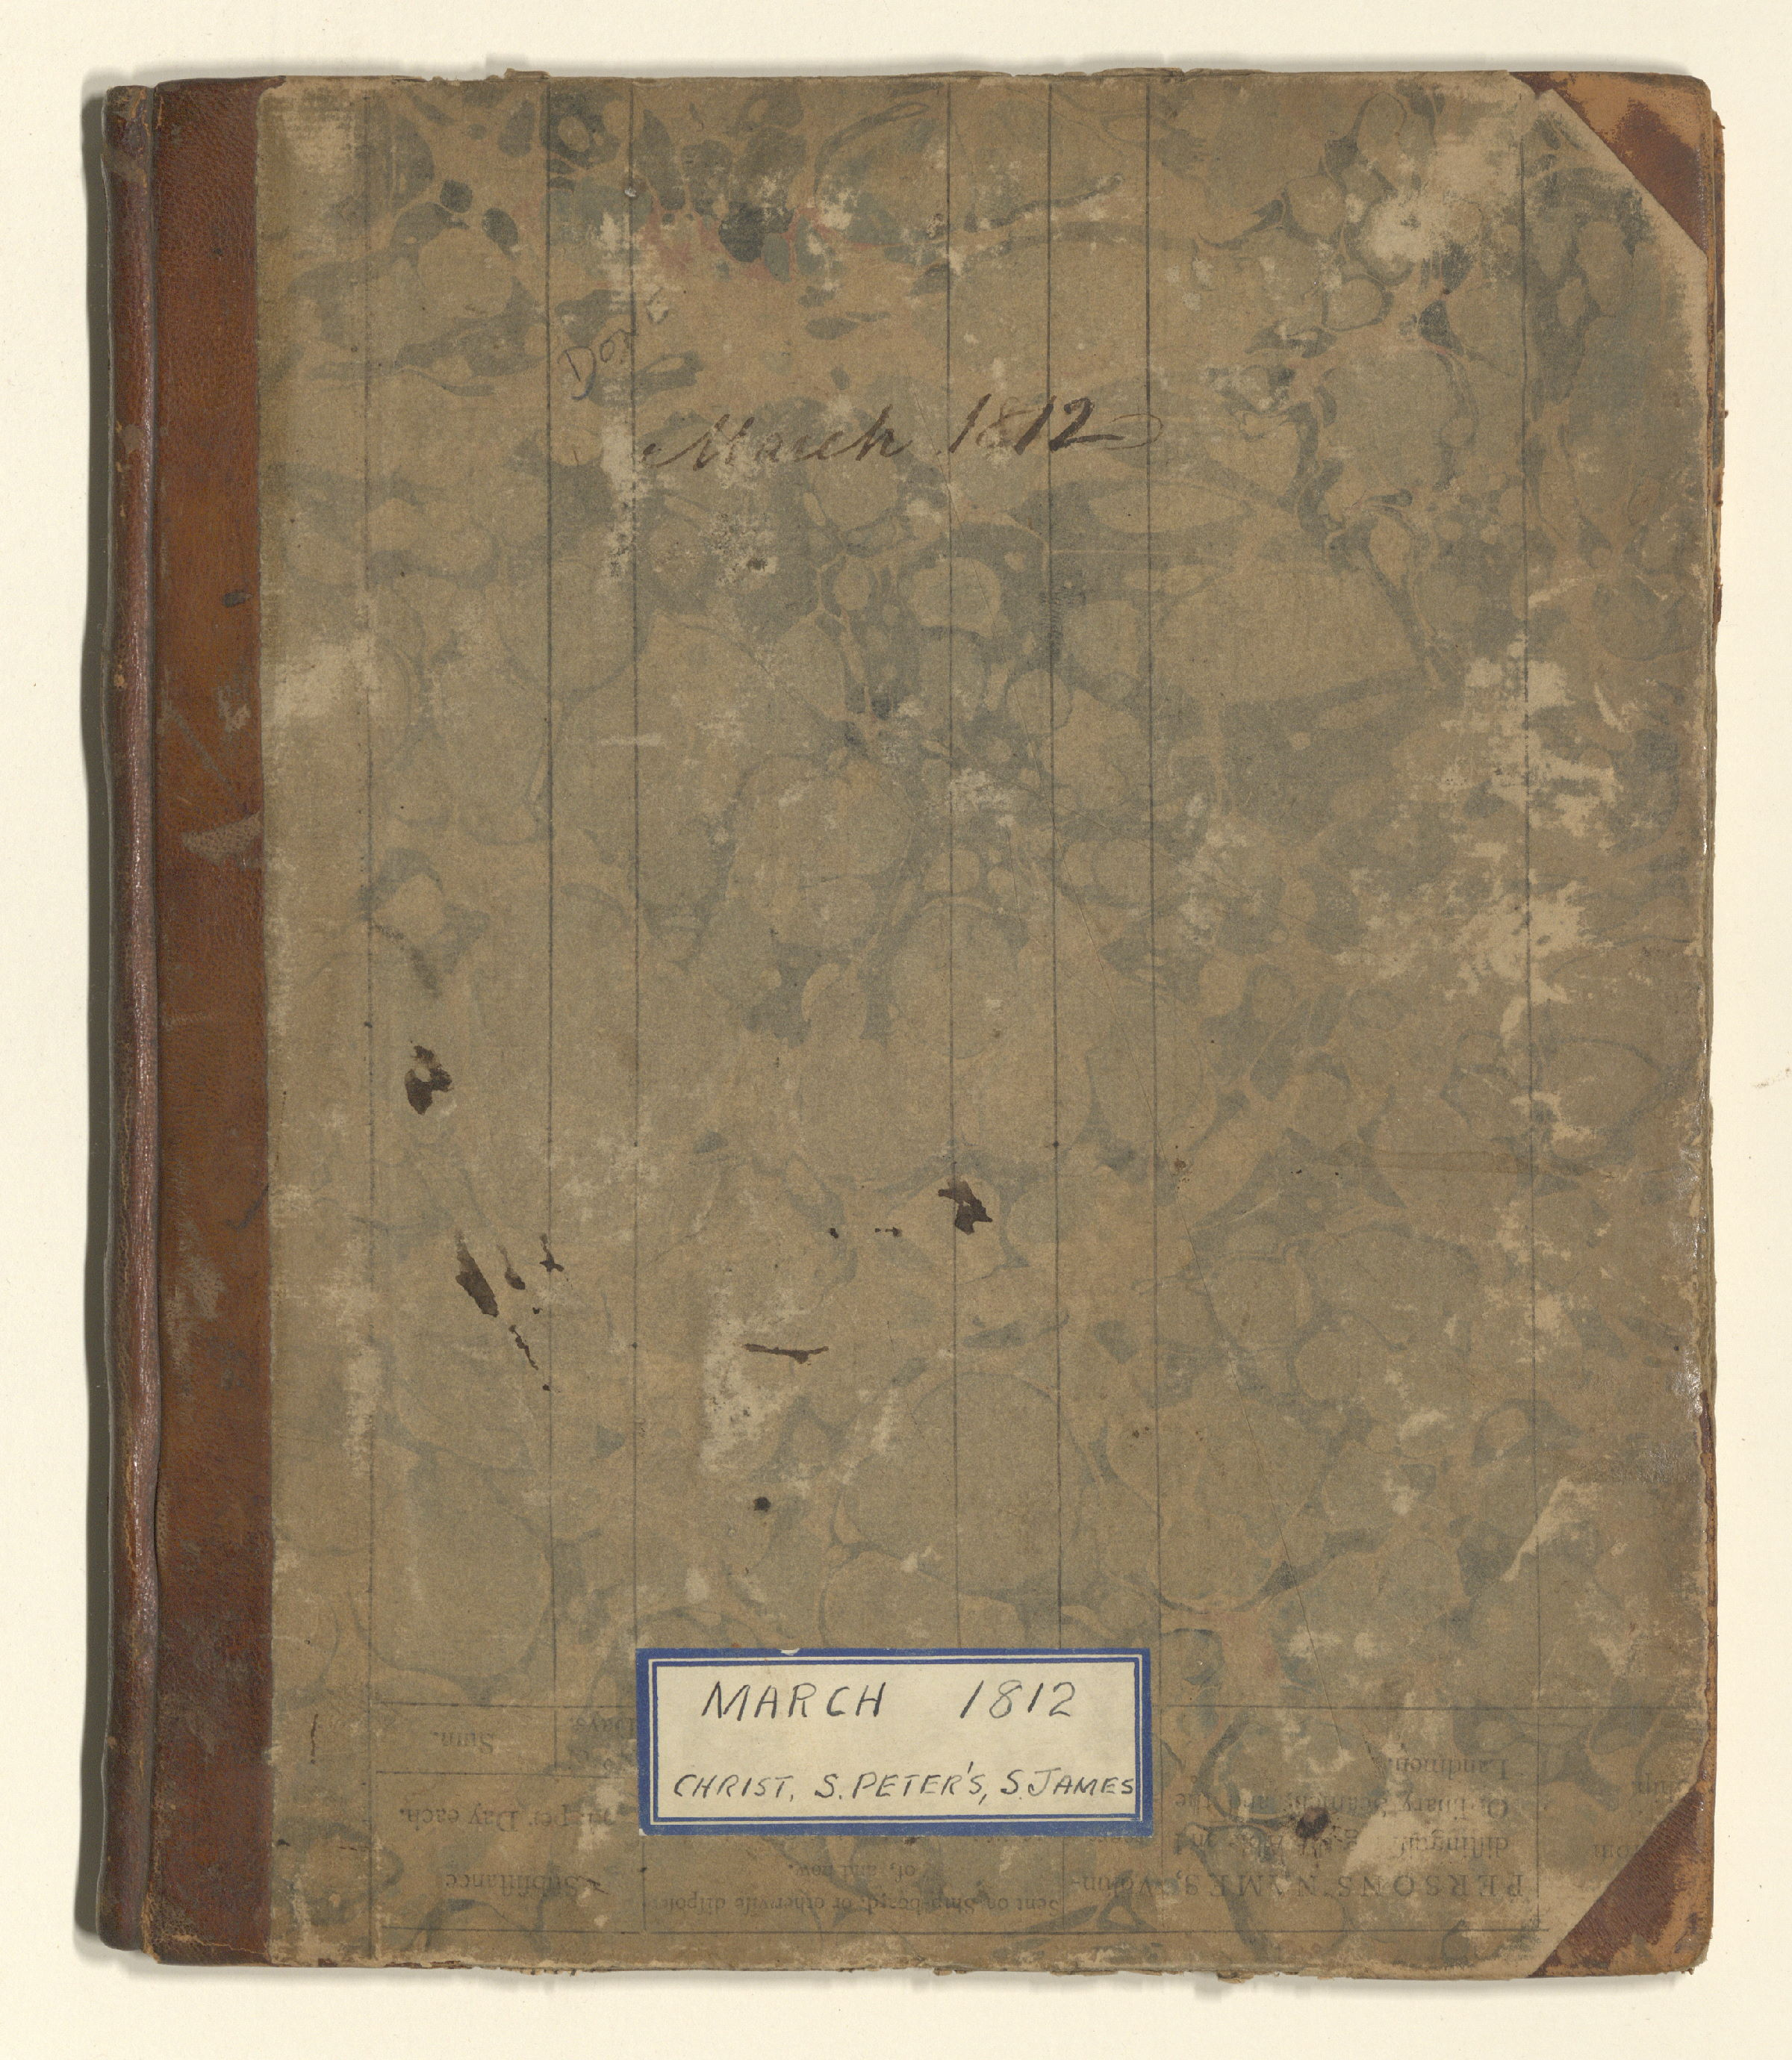 https://www.philageohistory.org/rdic-images/common/get-jpeg-book.cfm/ChristChurch.PewRentRecordsAccountBooksMarch1812_v288.001.FrontCover.jpg